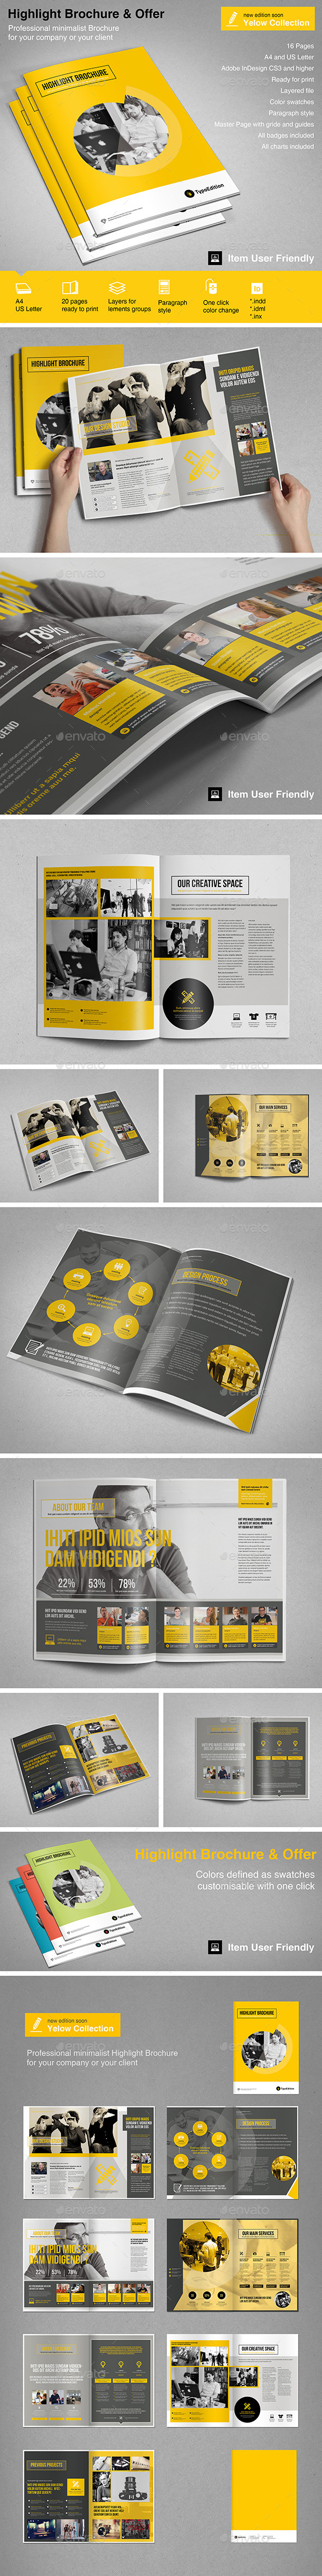 GraphicRiver Highlight Brochure Vol 2 10741462